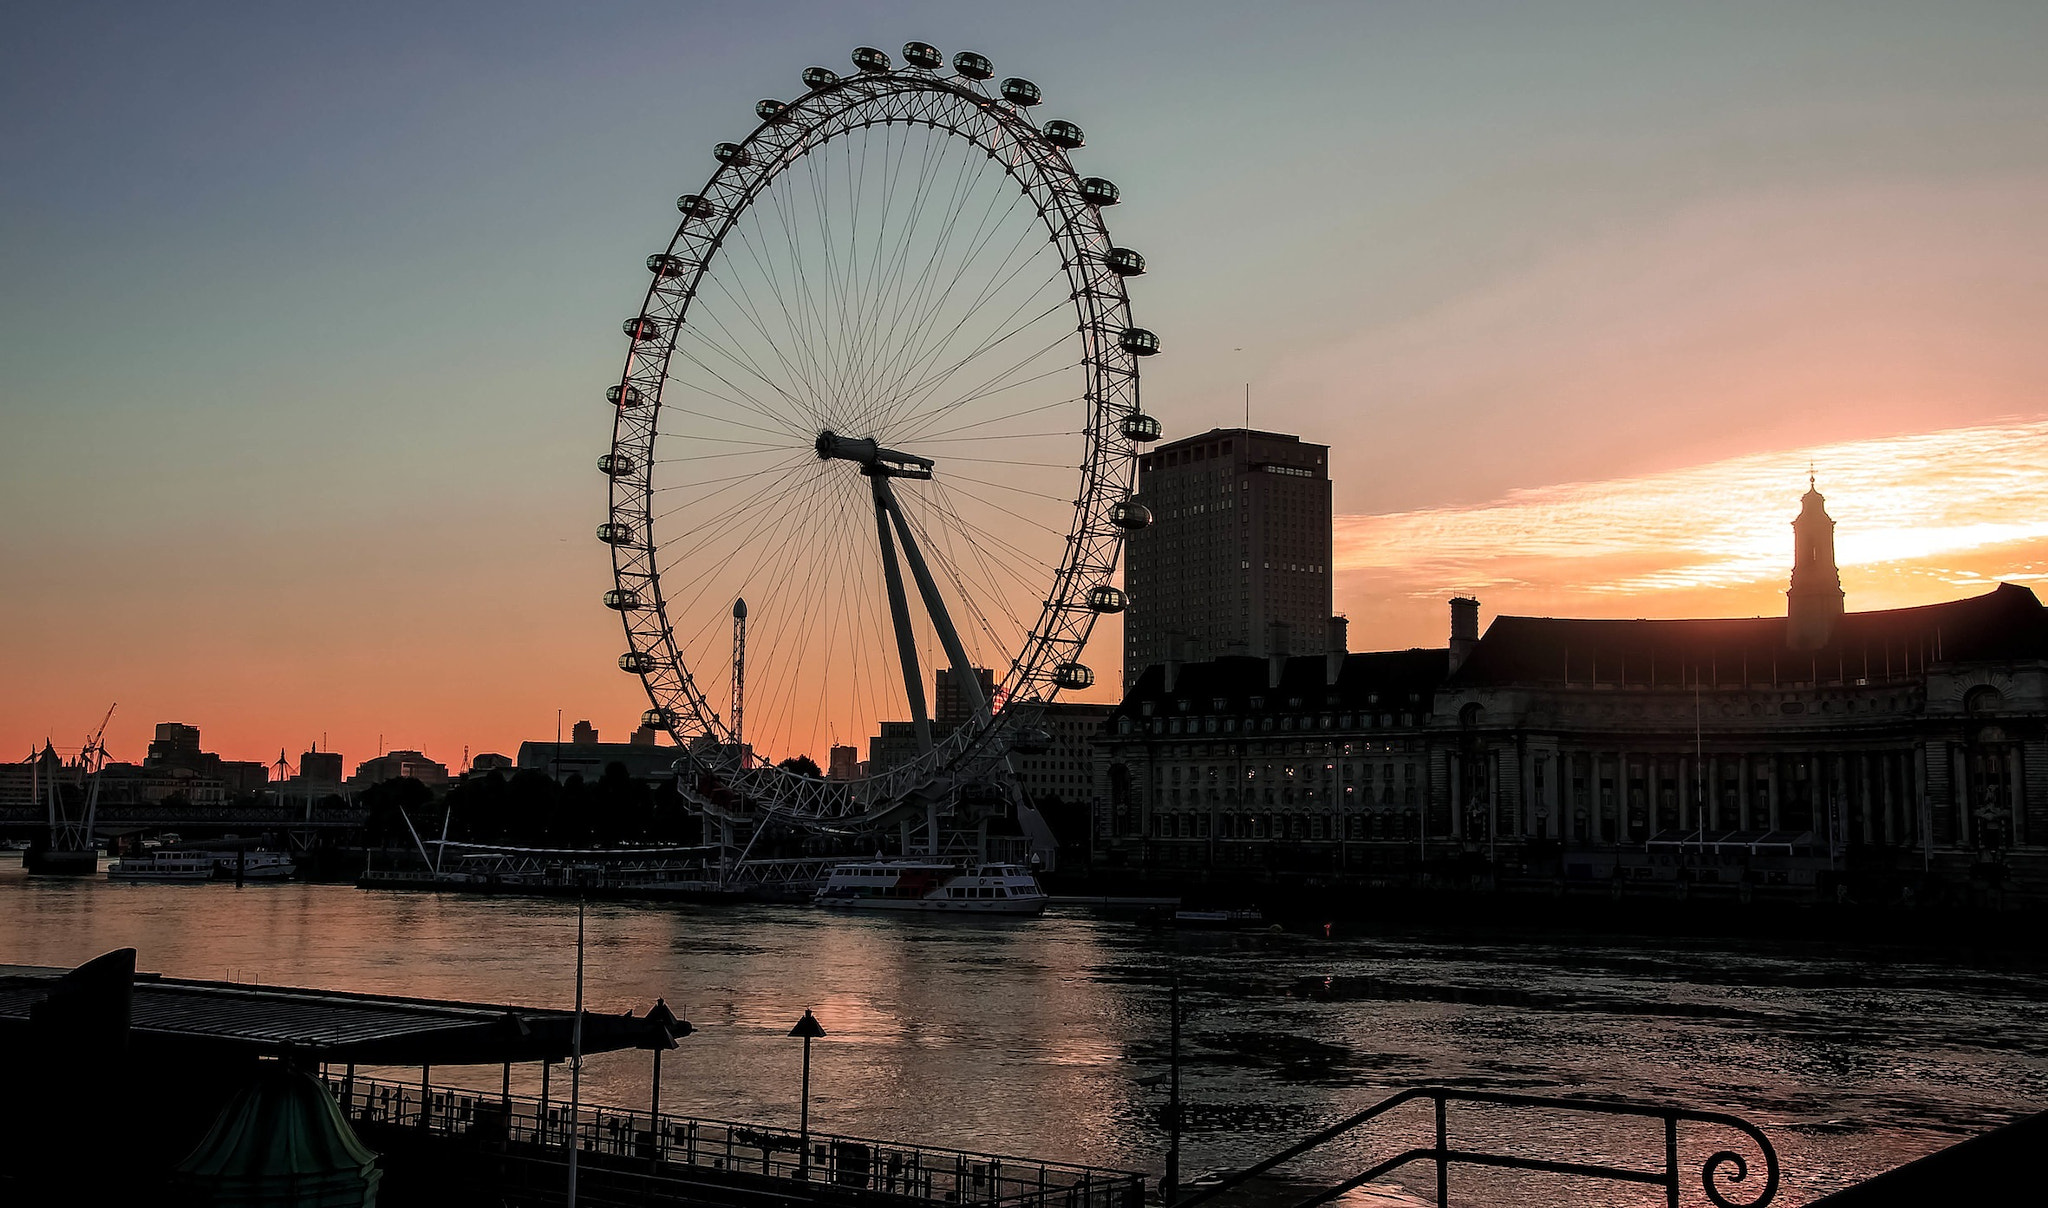 Photograph London Eye at Dawn by julian john on 500px